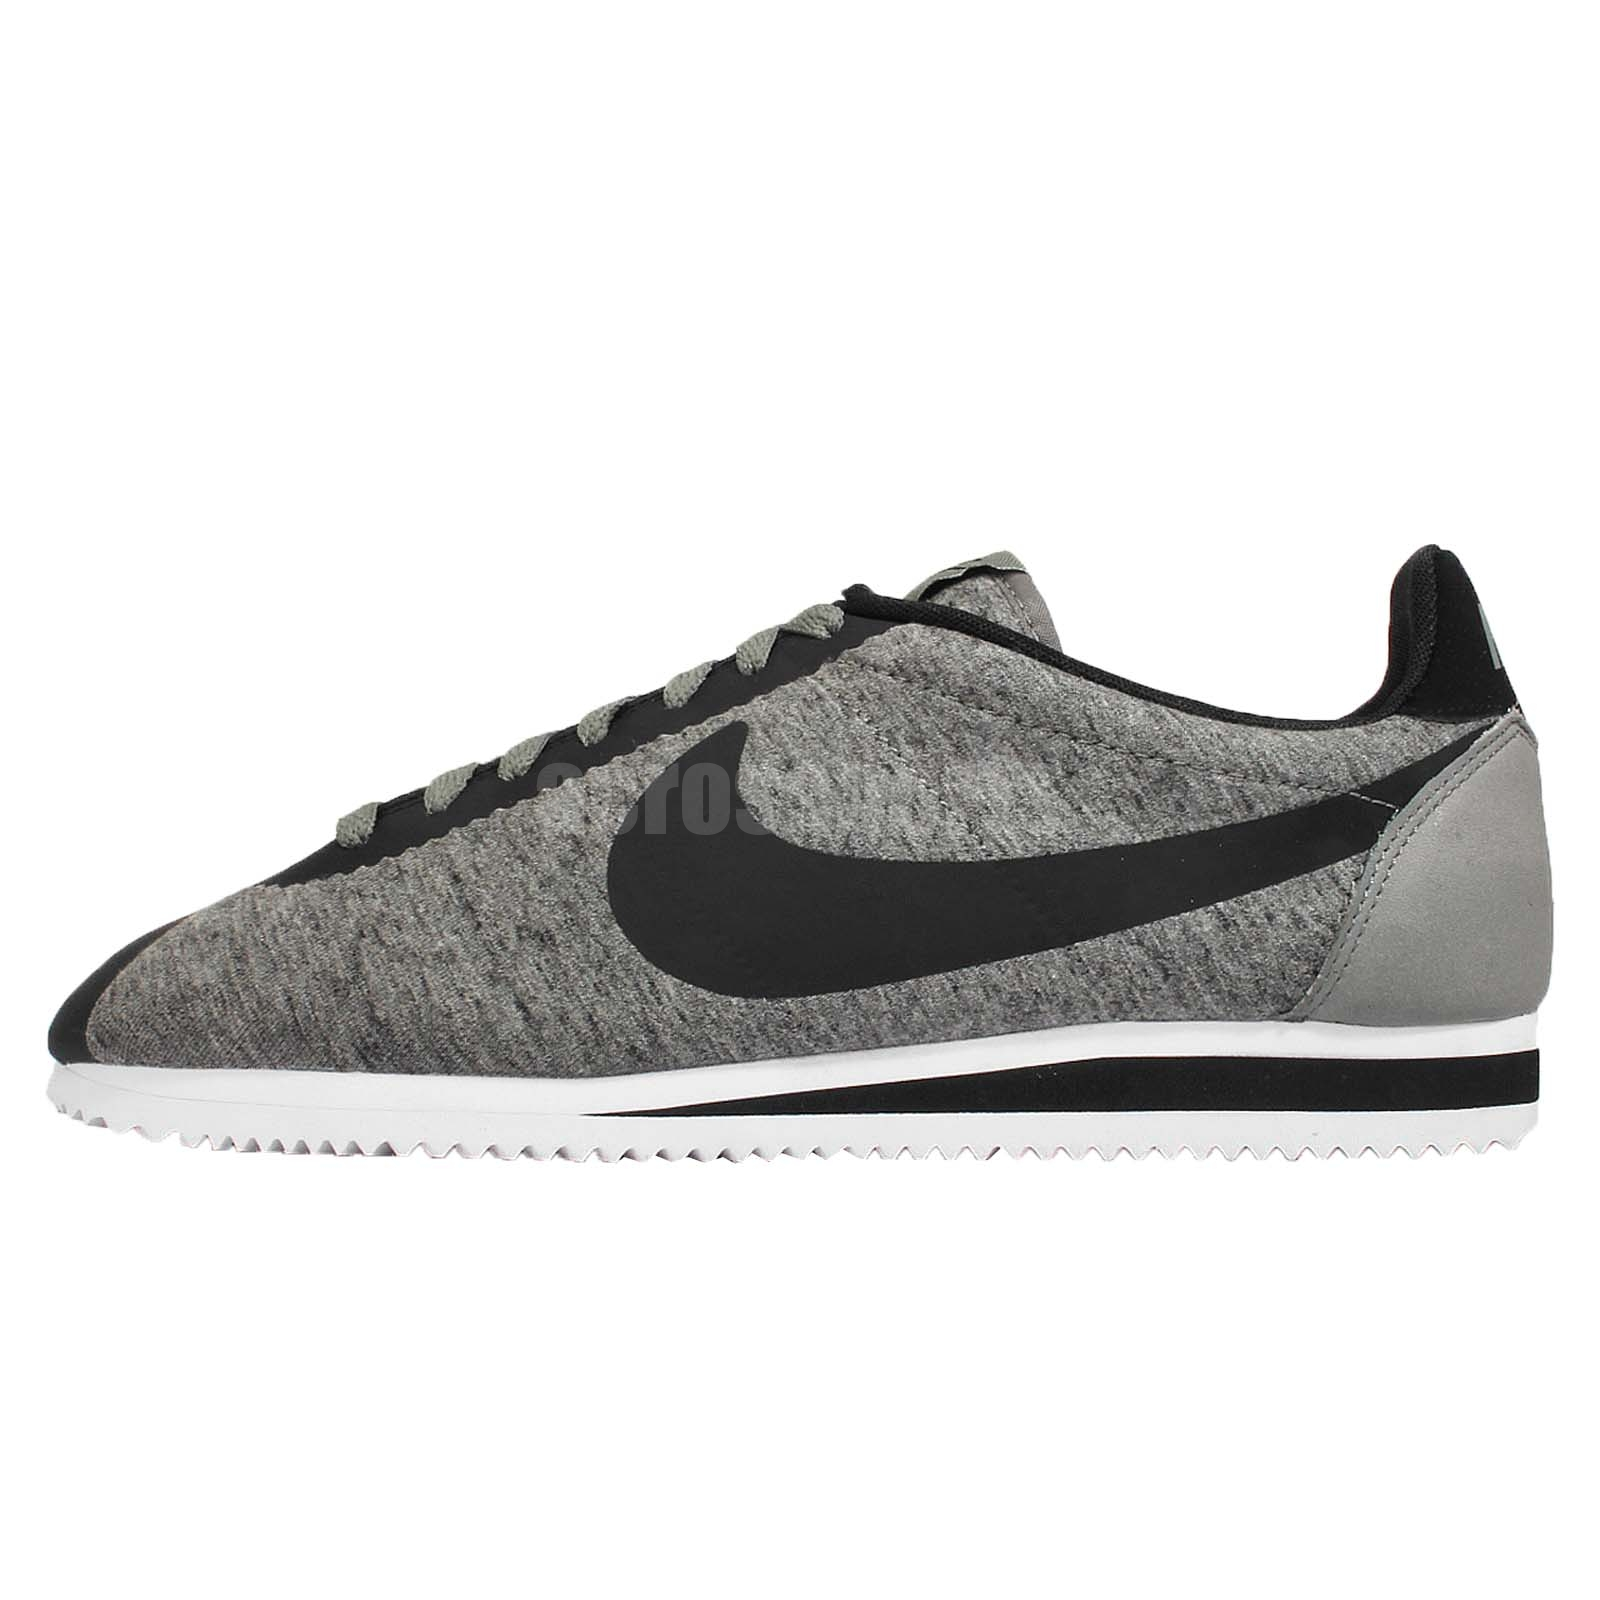 quality design d4ea0 b95f1 coupon code for nike cortez egypt b9363 27f95